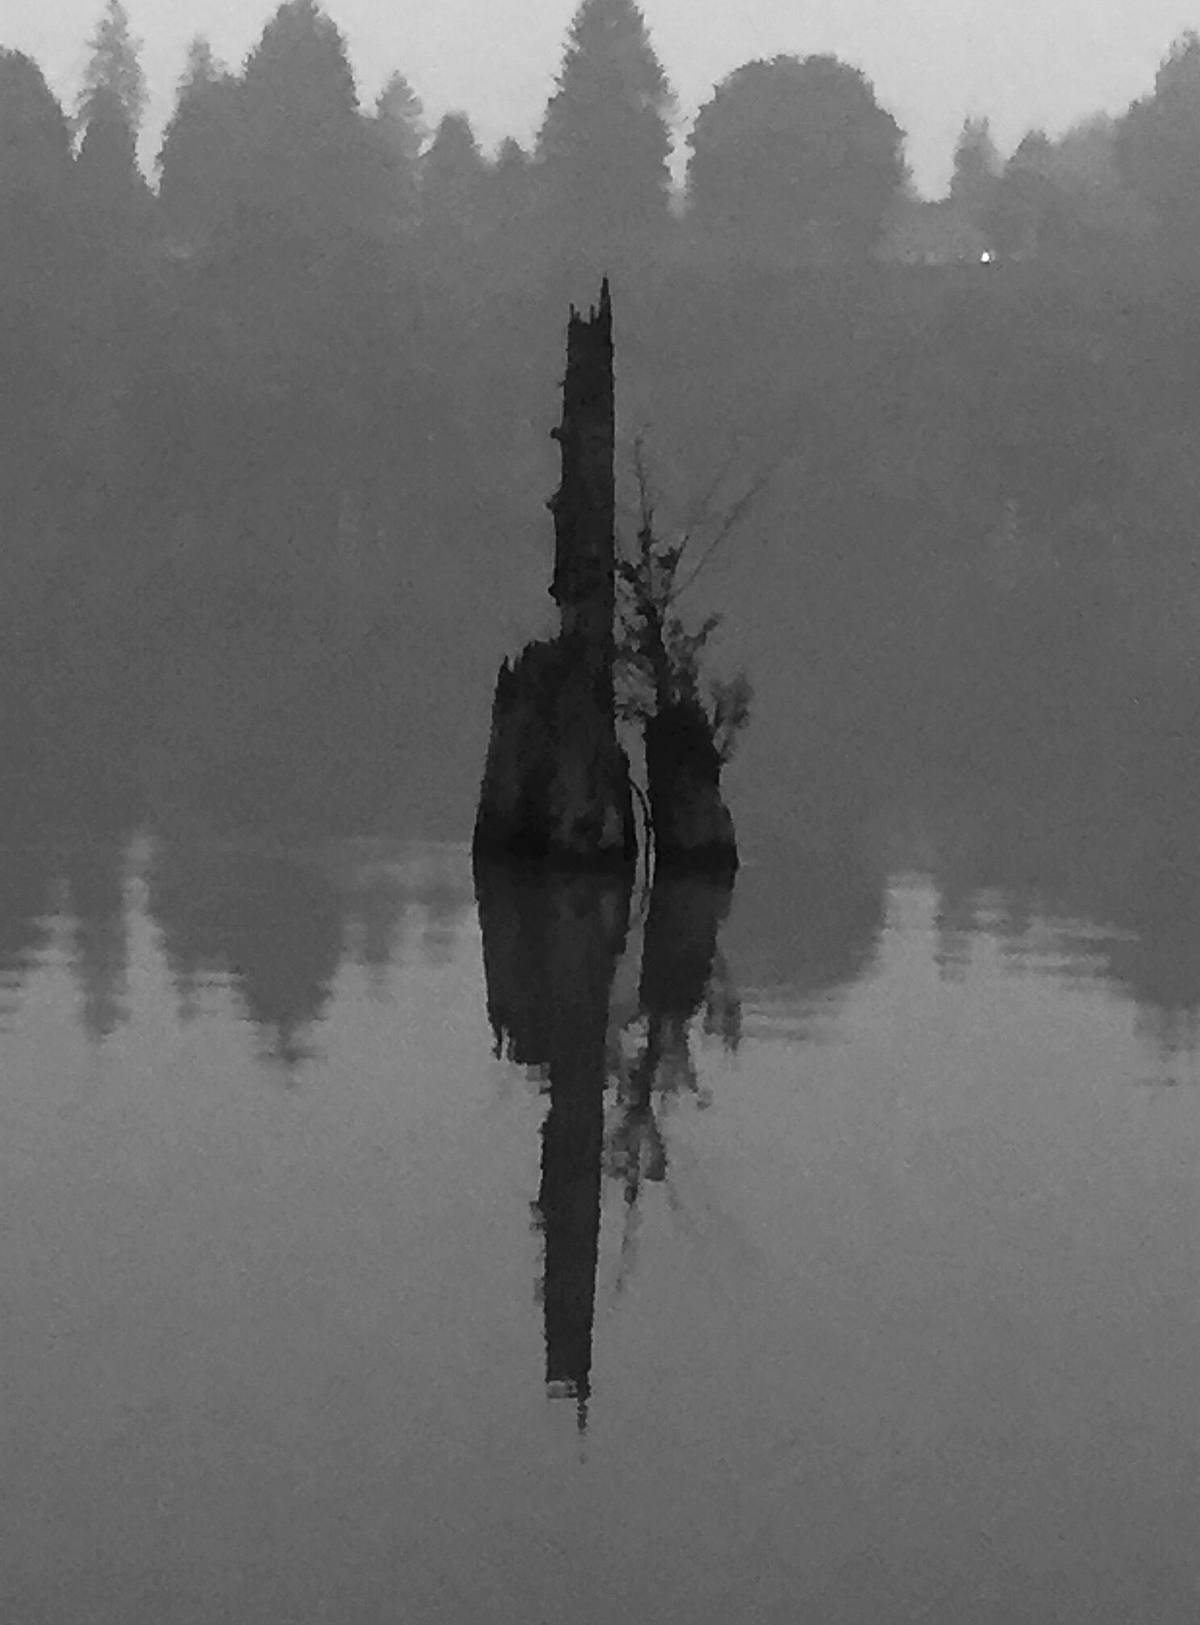 """Langley artist Gabrielle Strauss shared some recent photographs of her """"favourite river"""" – The Fraser River – as seen through the smoky banks of Derby Reach Regional Park. """"I found the lack of colour quite intriguing, and call them my Stillness series. (Special to Langley Advance Times)"""